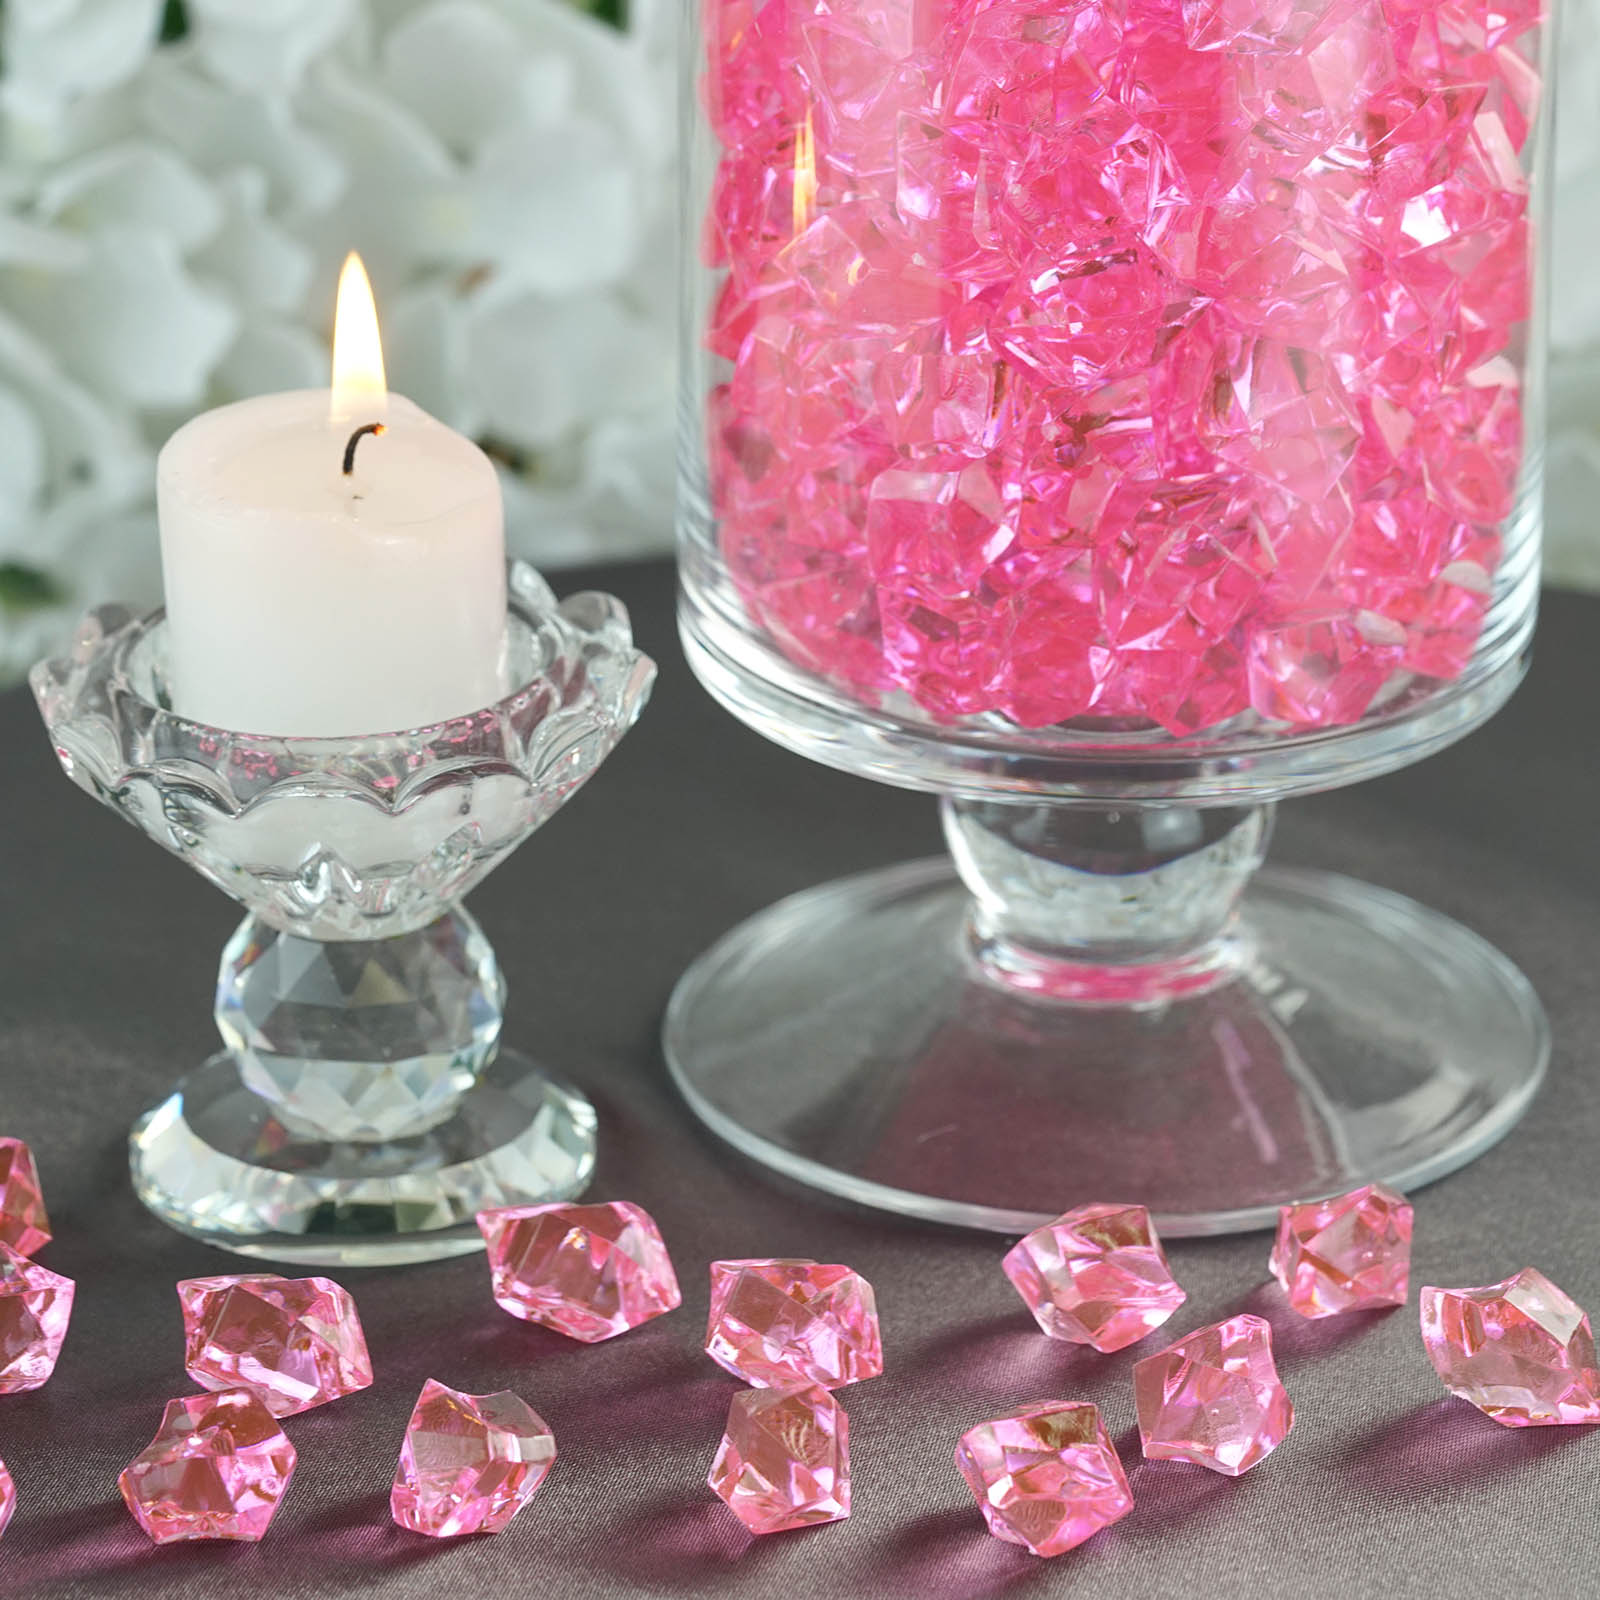 300-Acrylic-Ice-CRYSTAL-LIKE-Pieces-Wedding-Centerpieces-Decorations-Supplies thumbnail 47